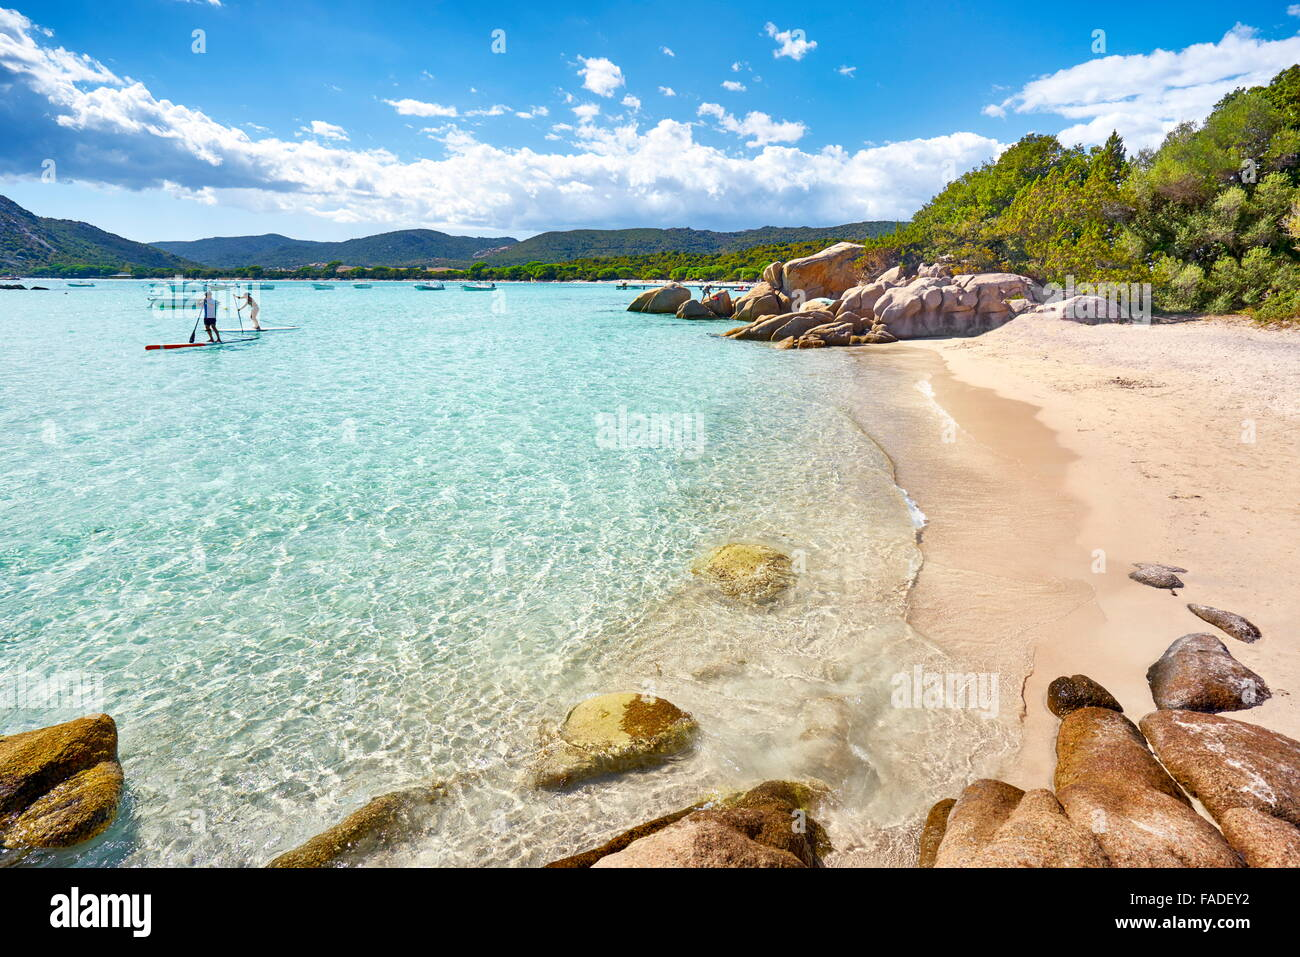 Santa Giulia Beach, Porto-Vecchio, East Coast of Corsica Island, France - Stock Image